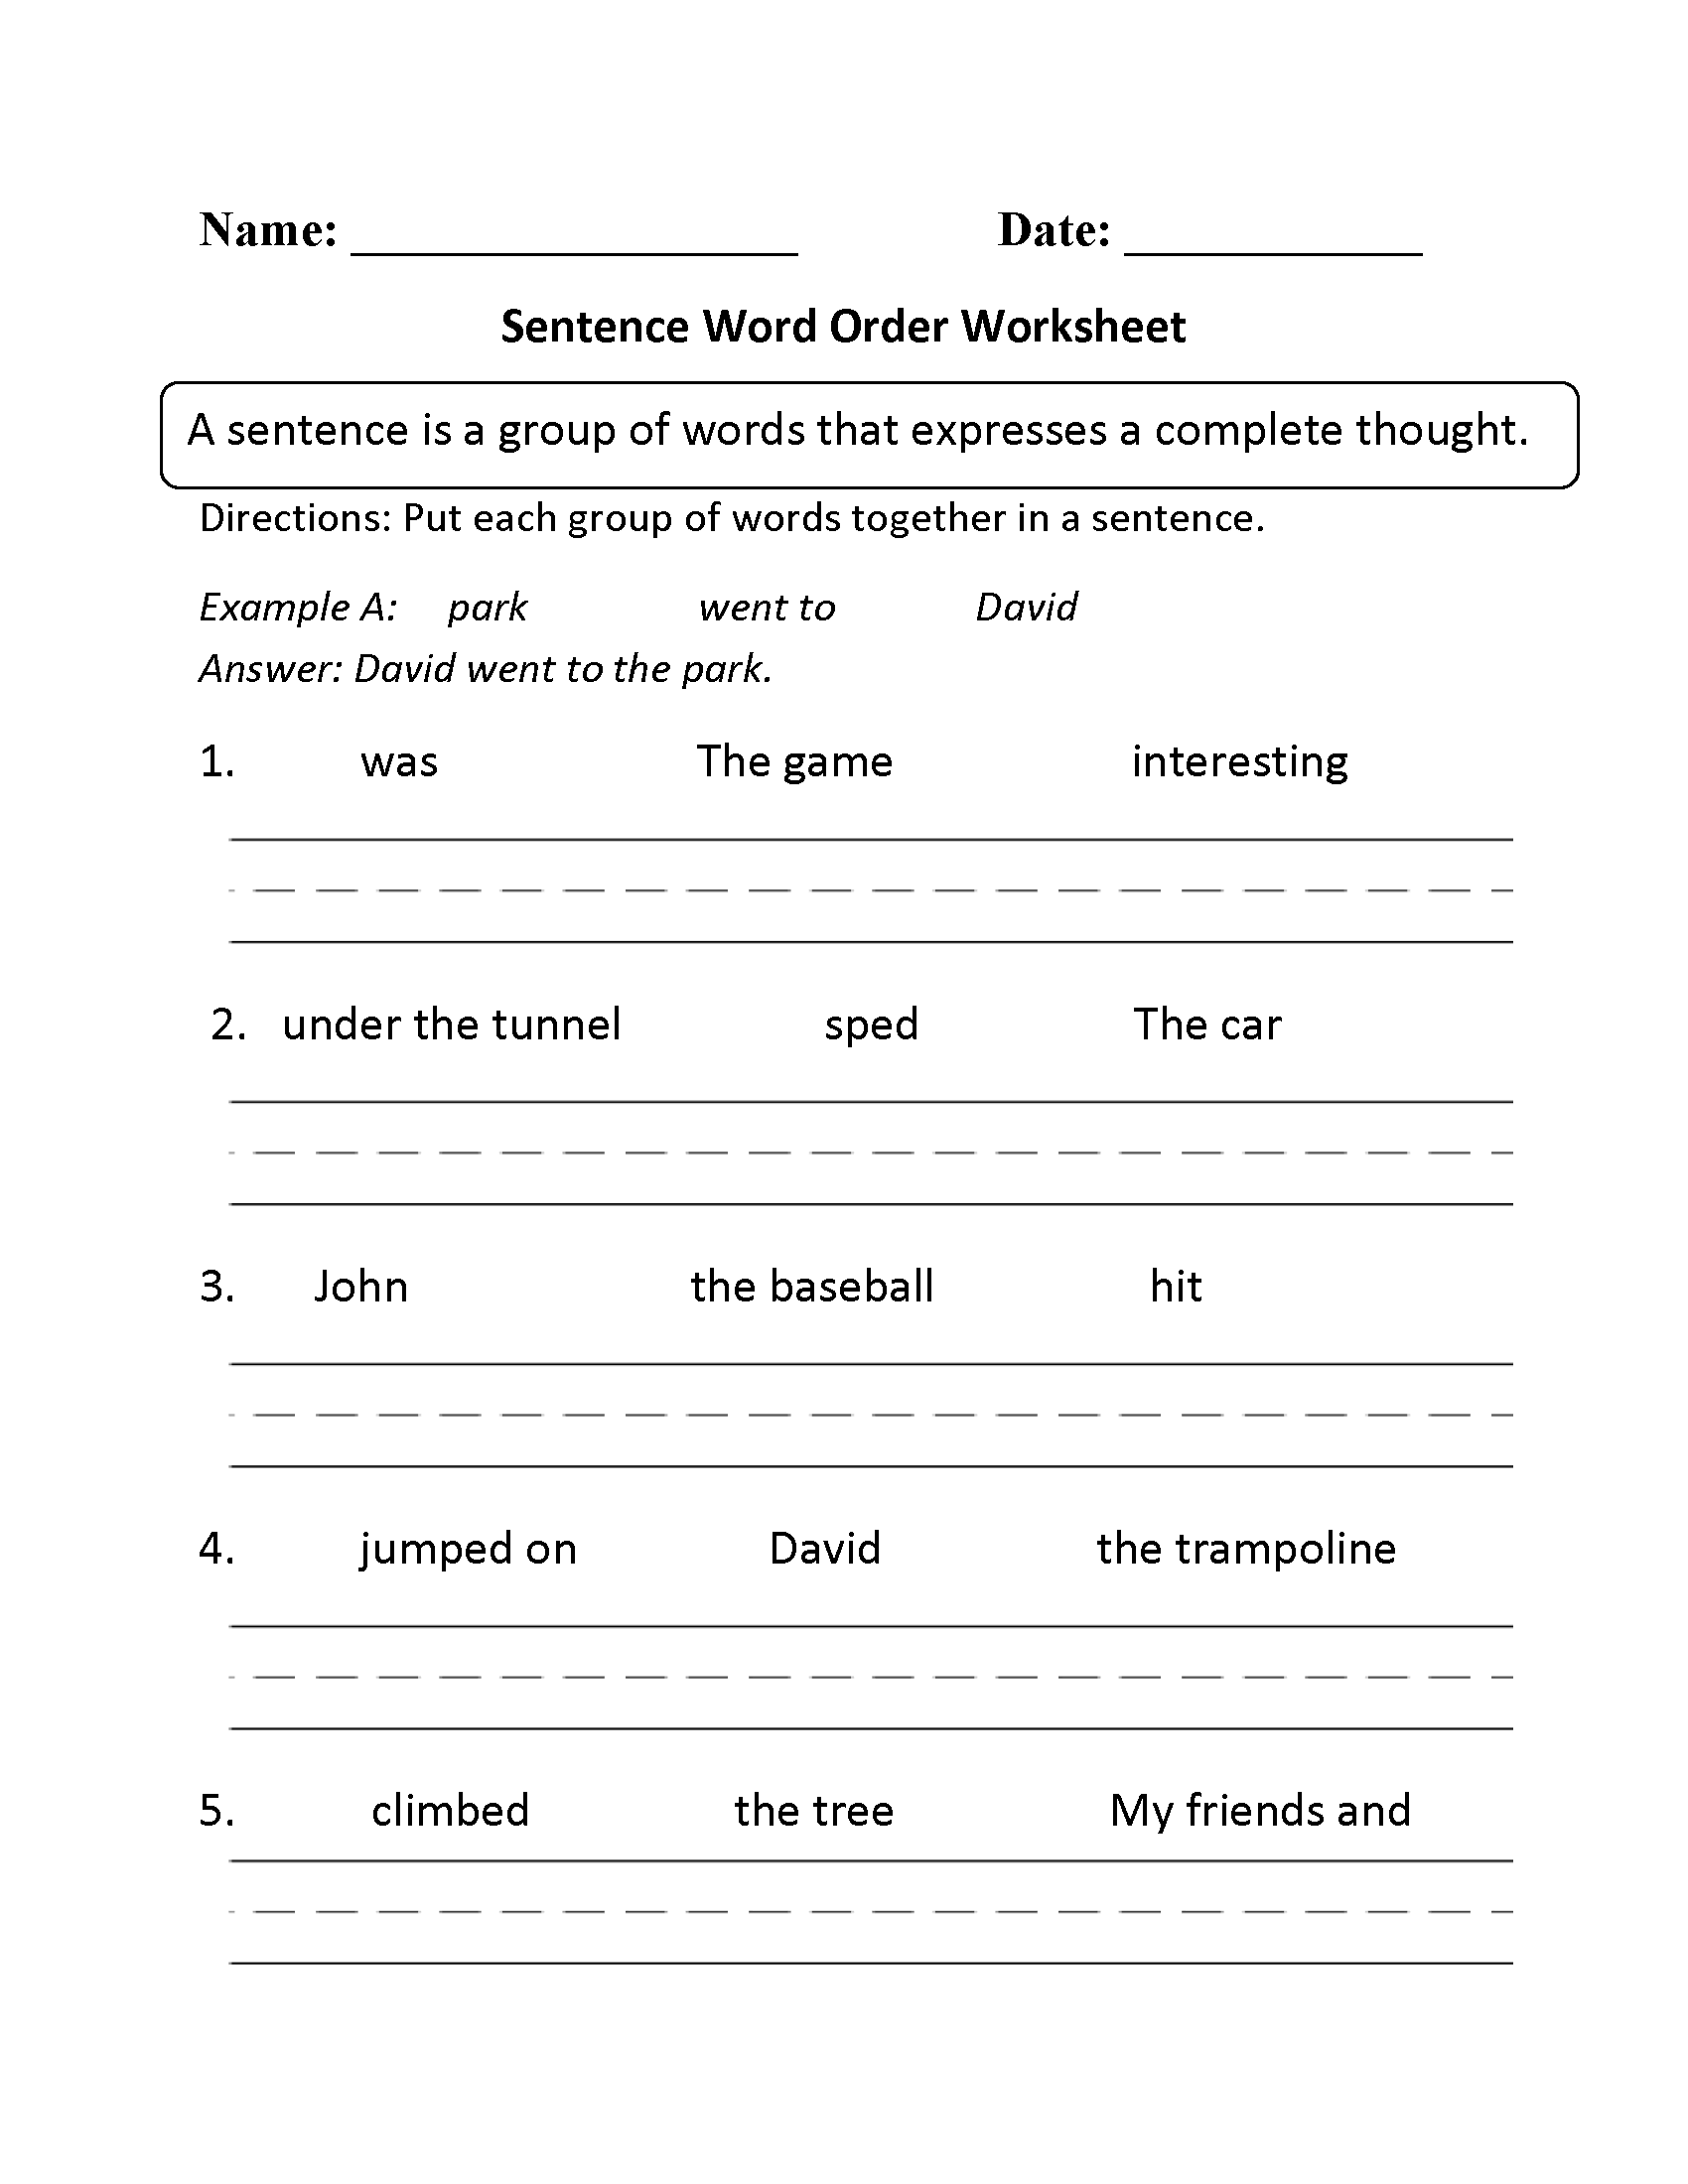 Worksheets Free Aphasia Worksheets 2nd grade sentence structure worksheets free library building worksheets